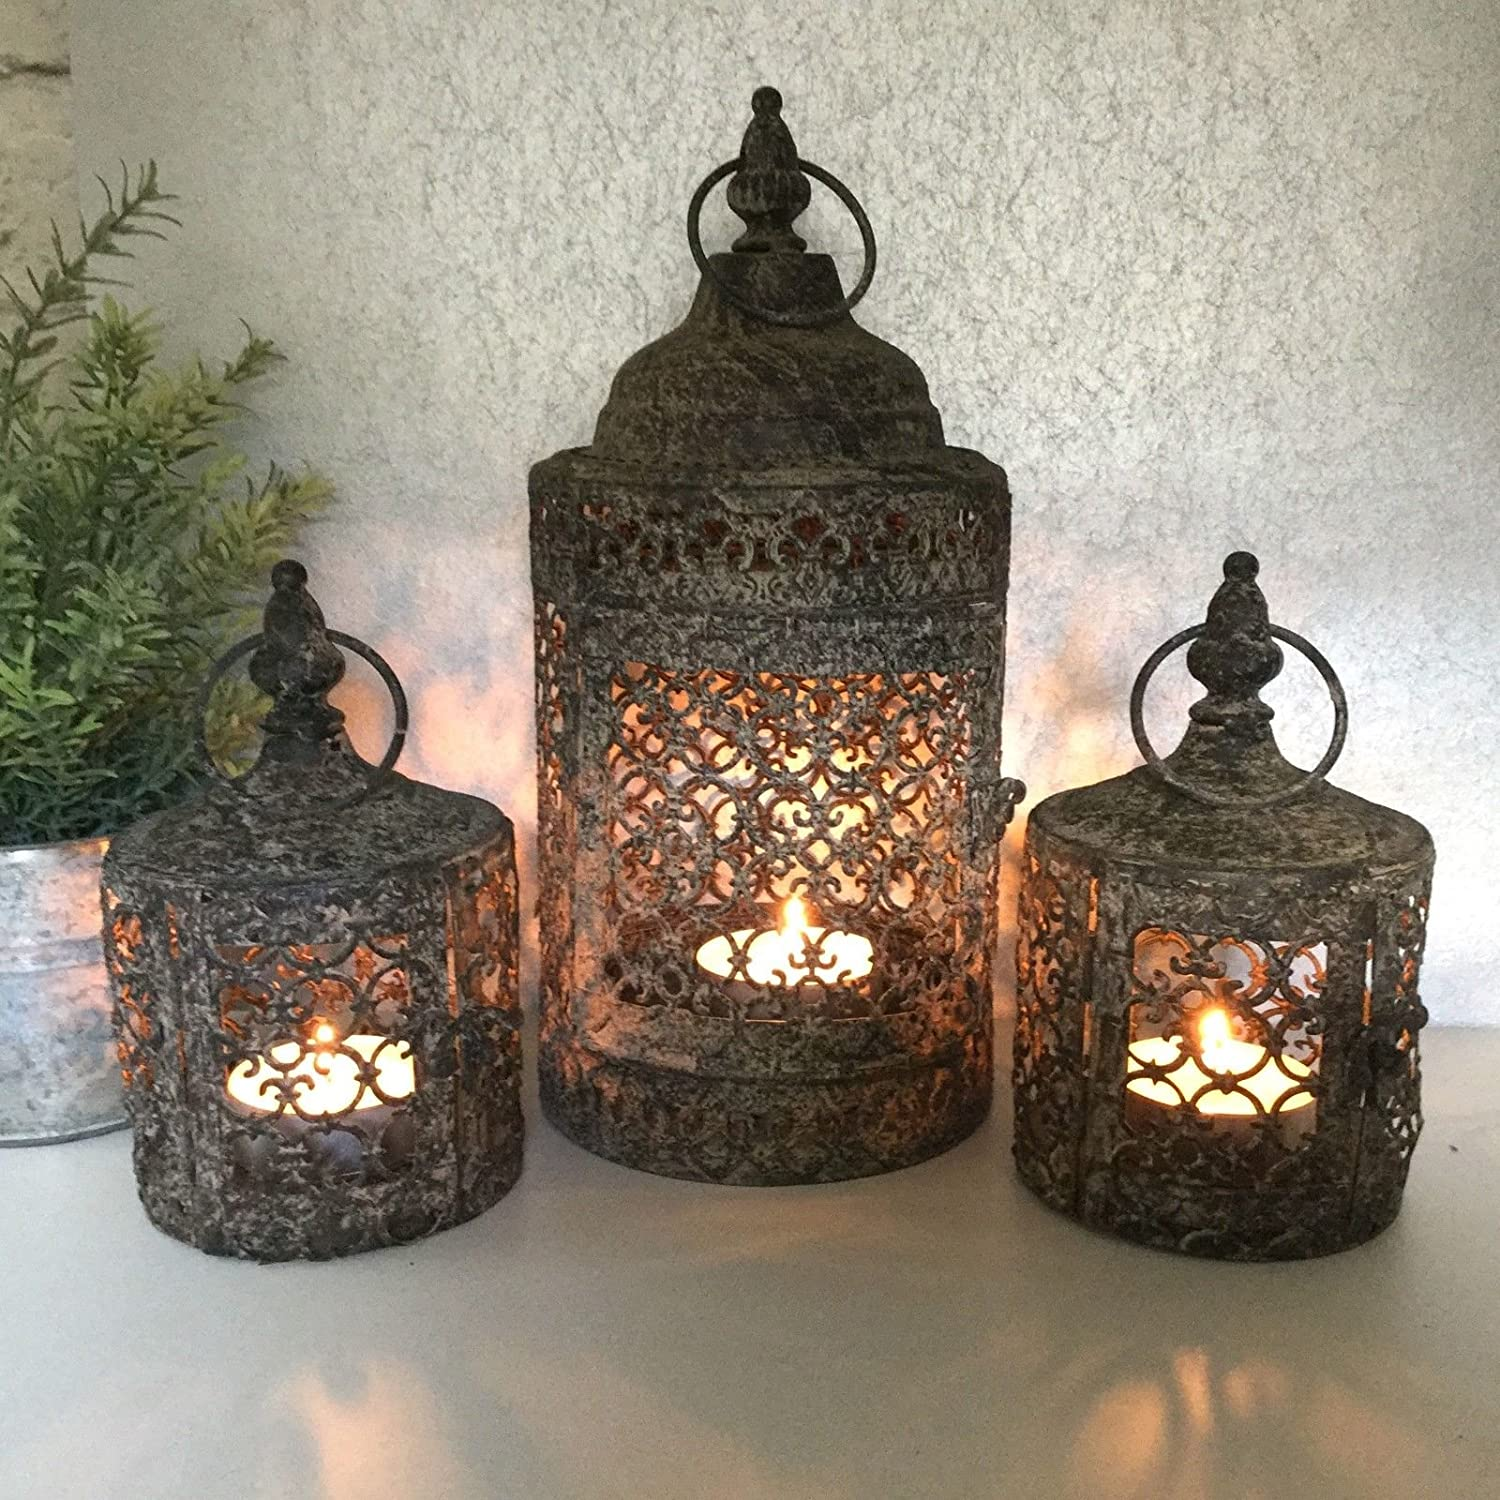 Set 3 Antique Vintage Style Moroccan Lantern Candle Holder Tea Light Garden Home AGI